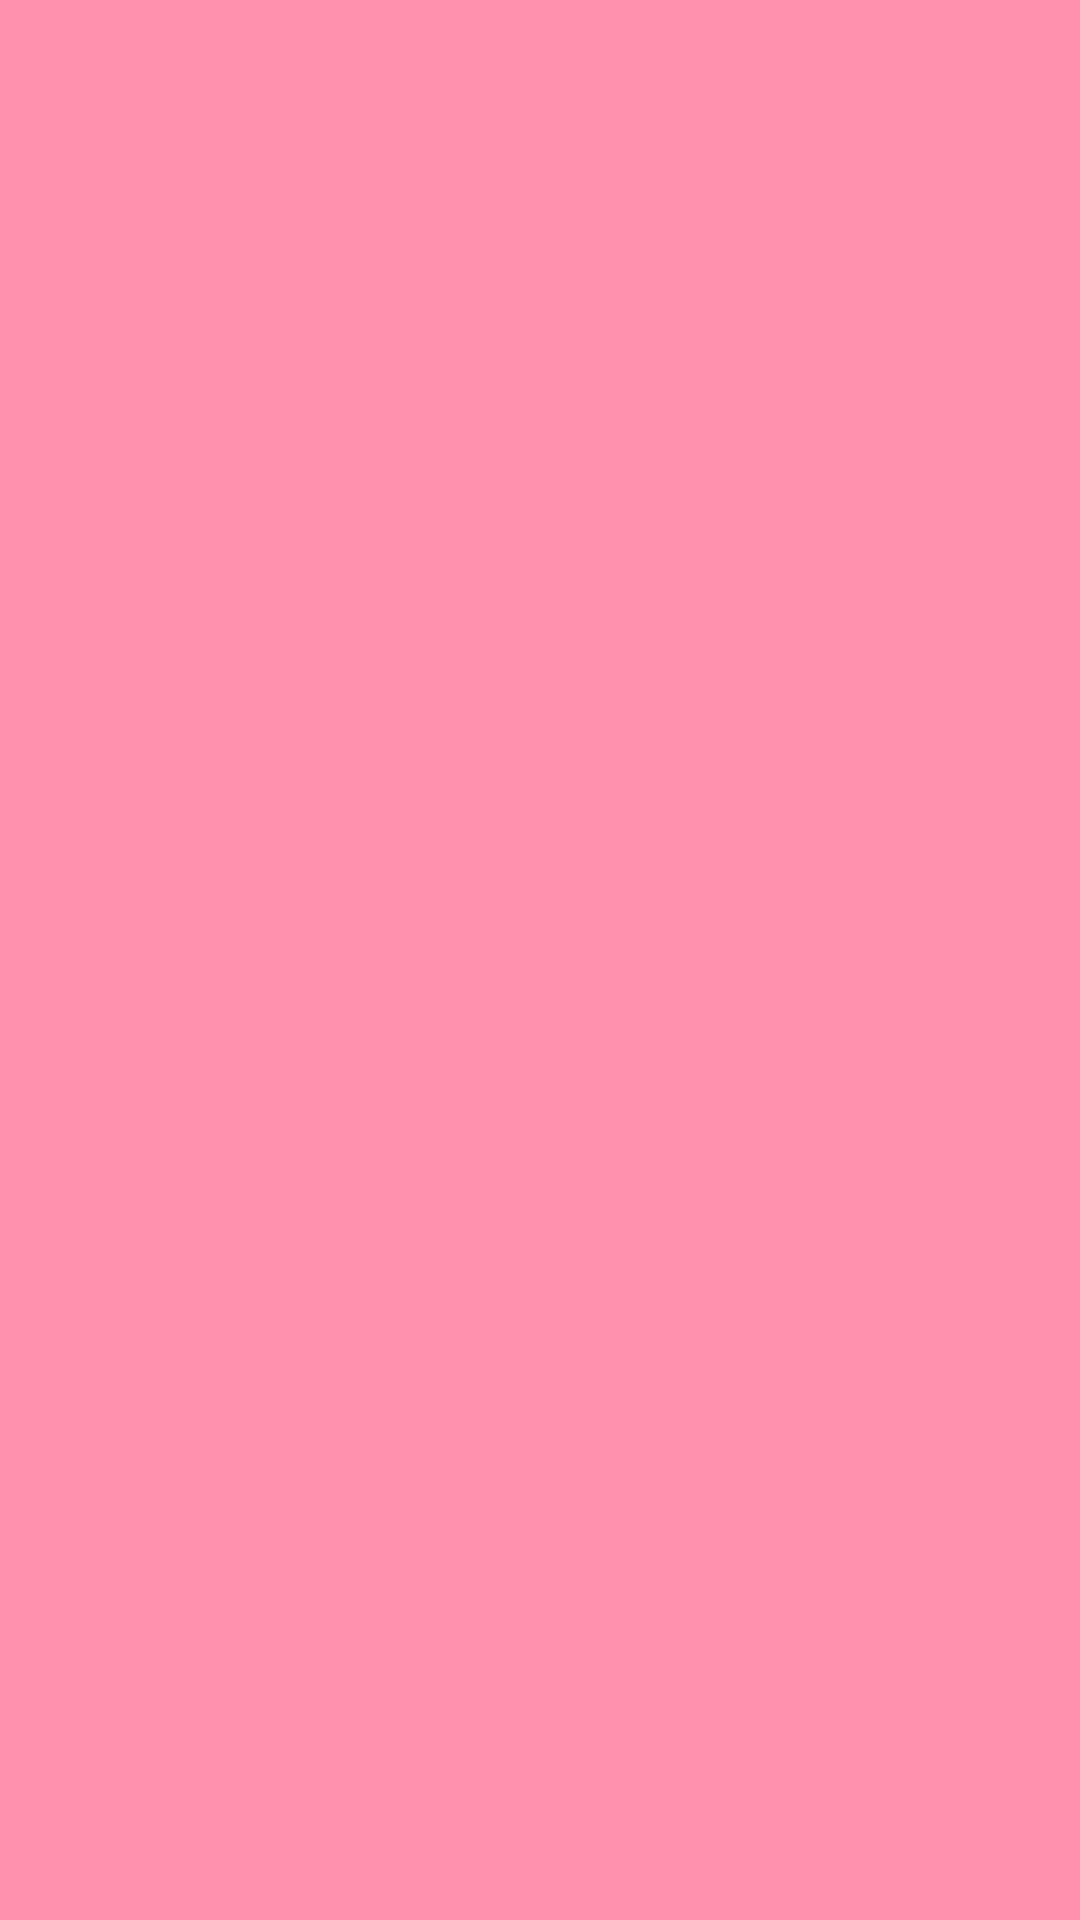 1080x1920 Schauss Pink Solid Color Background